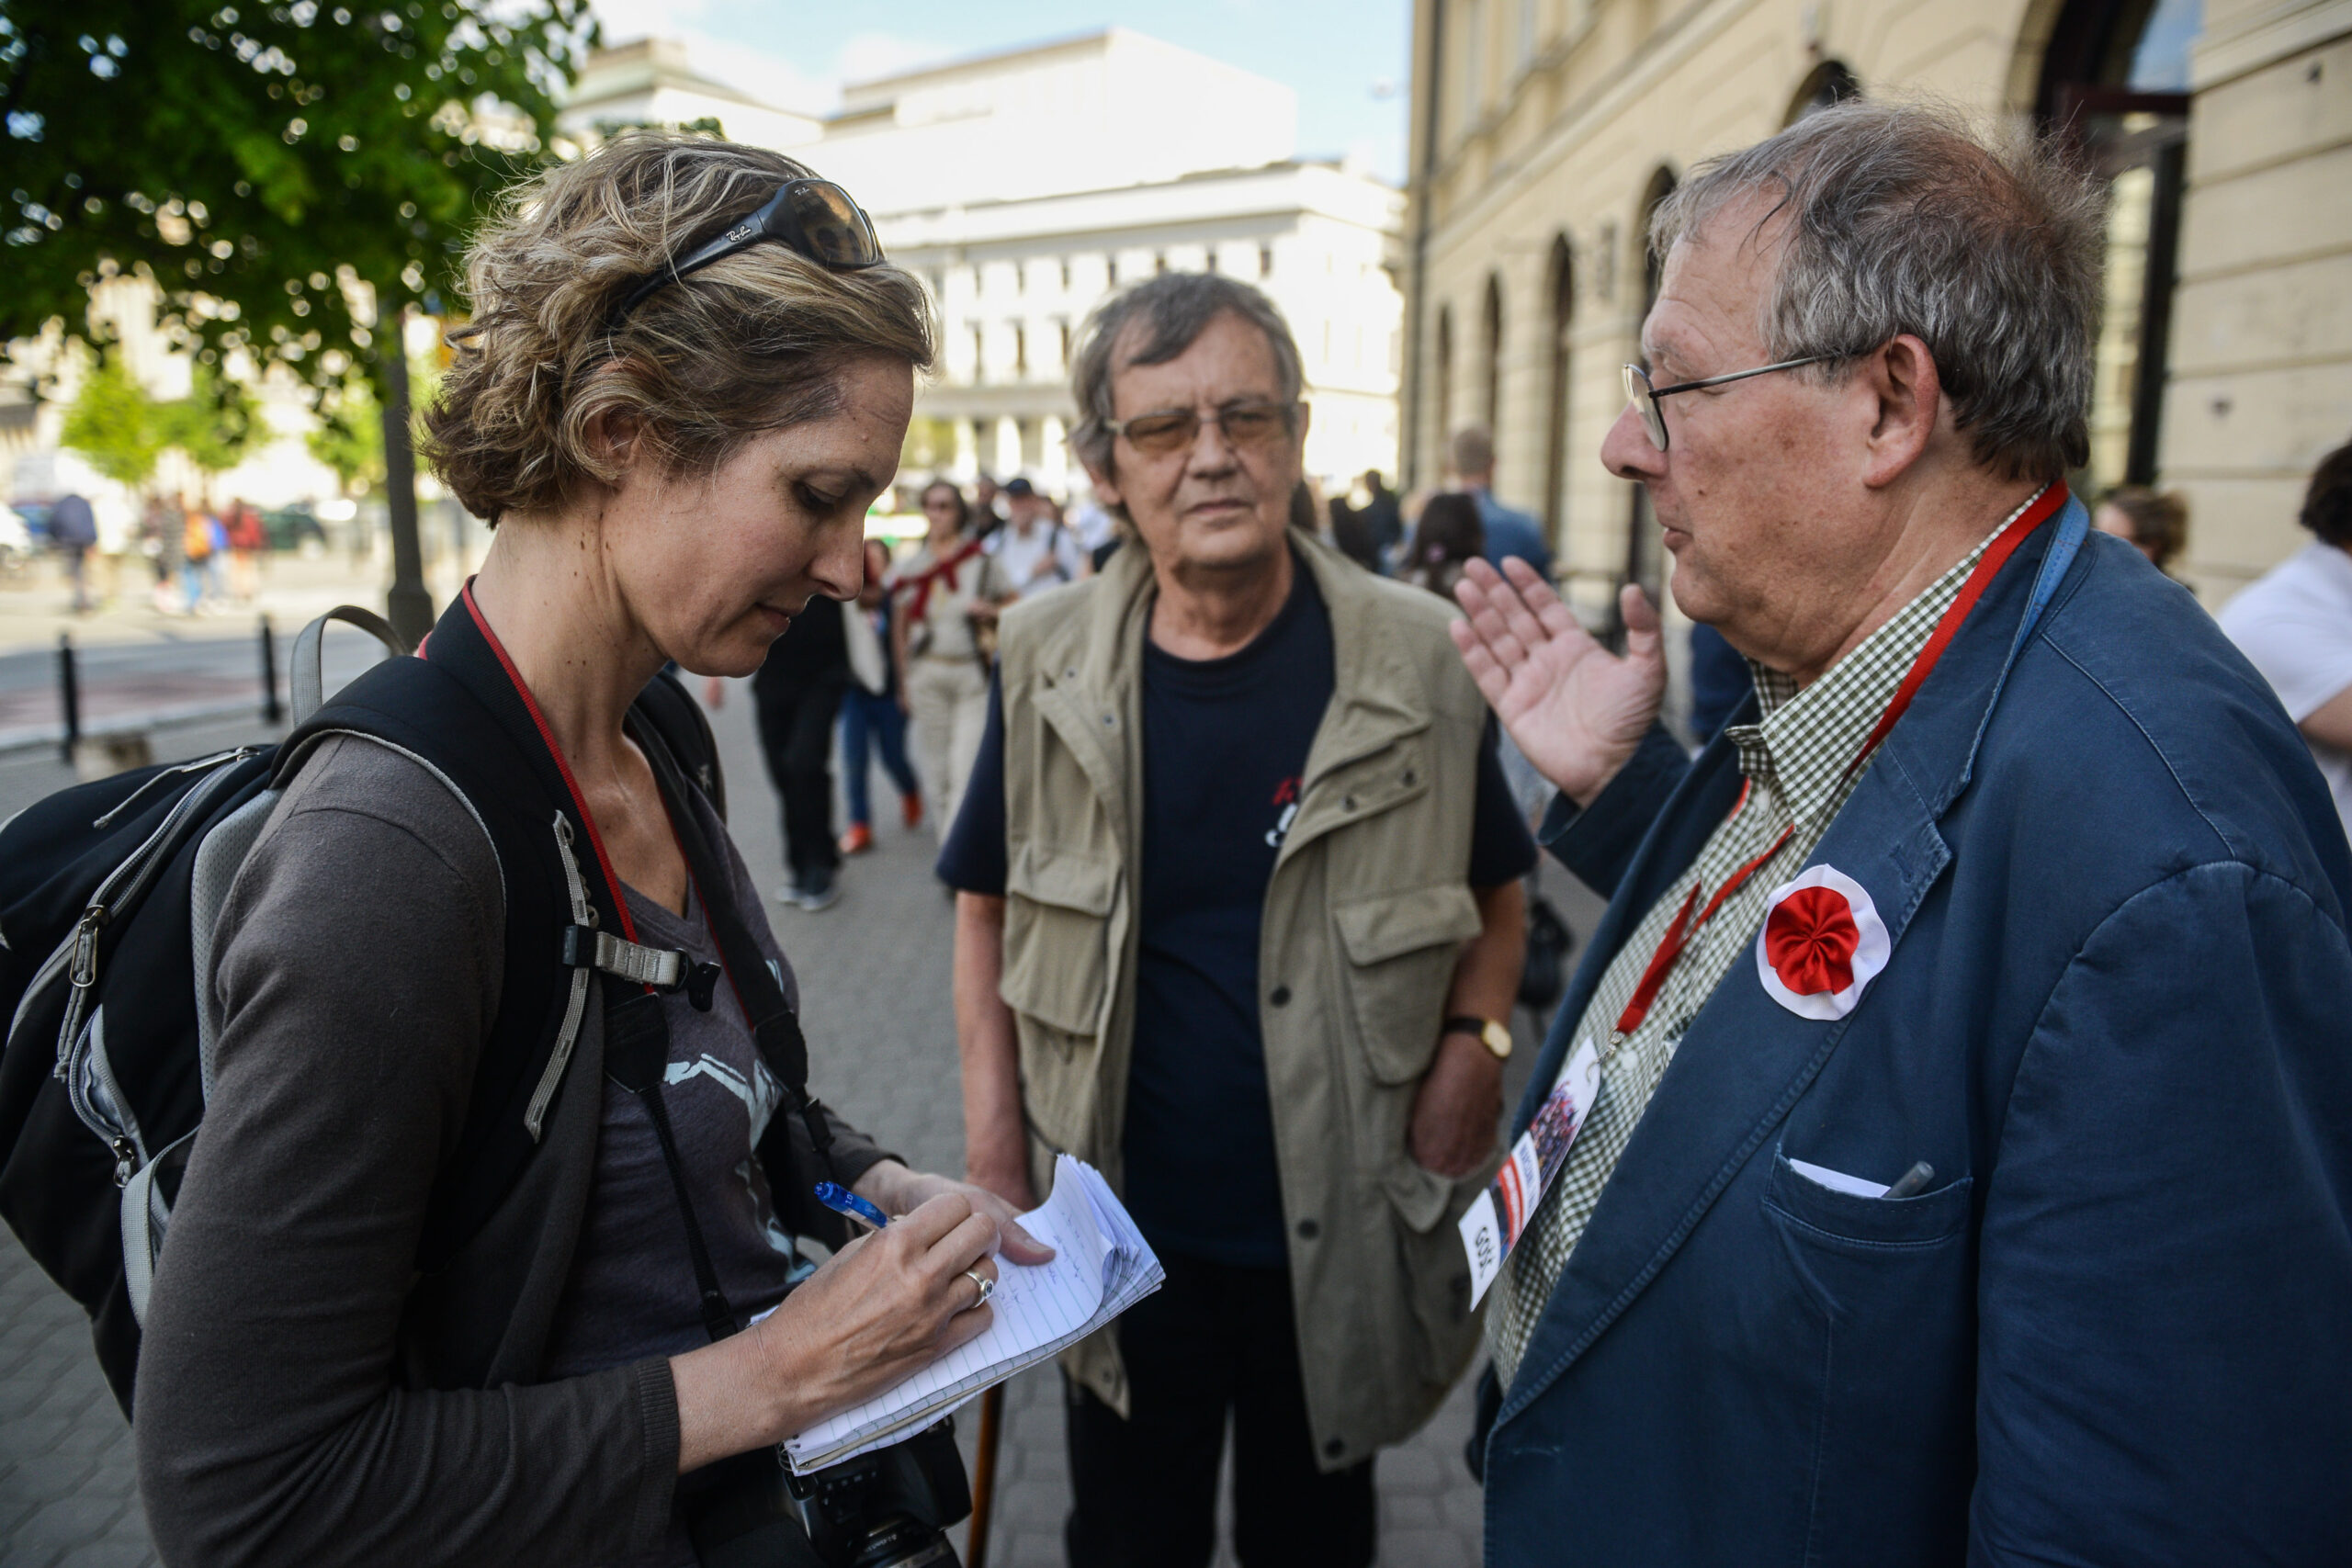 I bumped into Polish democracy hero Adam Michnik on the street in Warsaw after a large pro-European rally on the street and decided to quickly interview him. Photo by Kuba Kaminski.